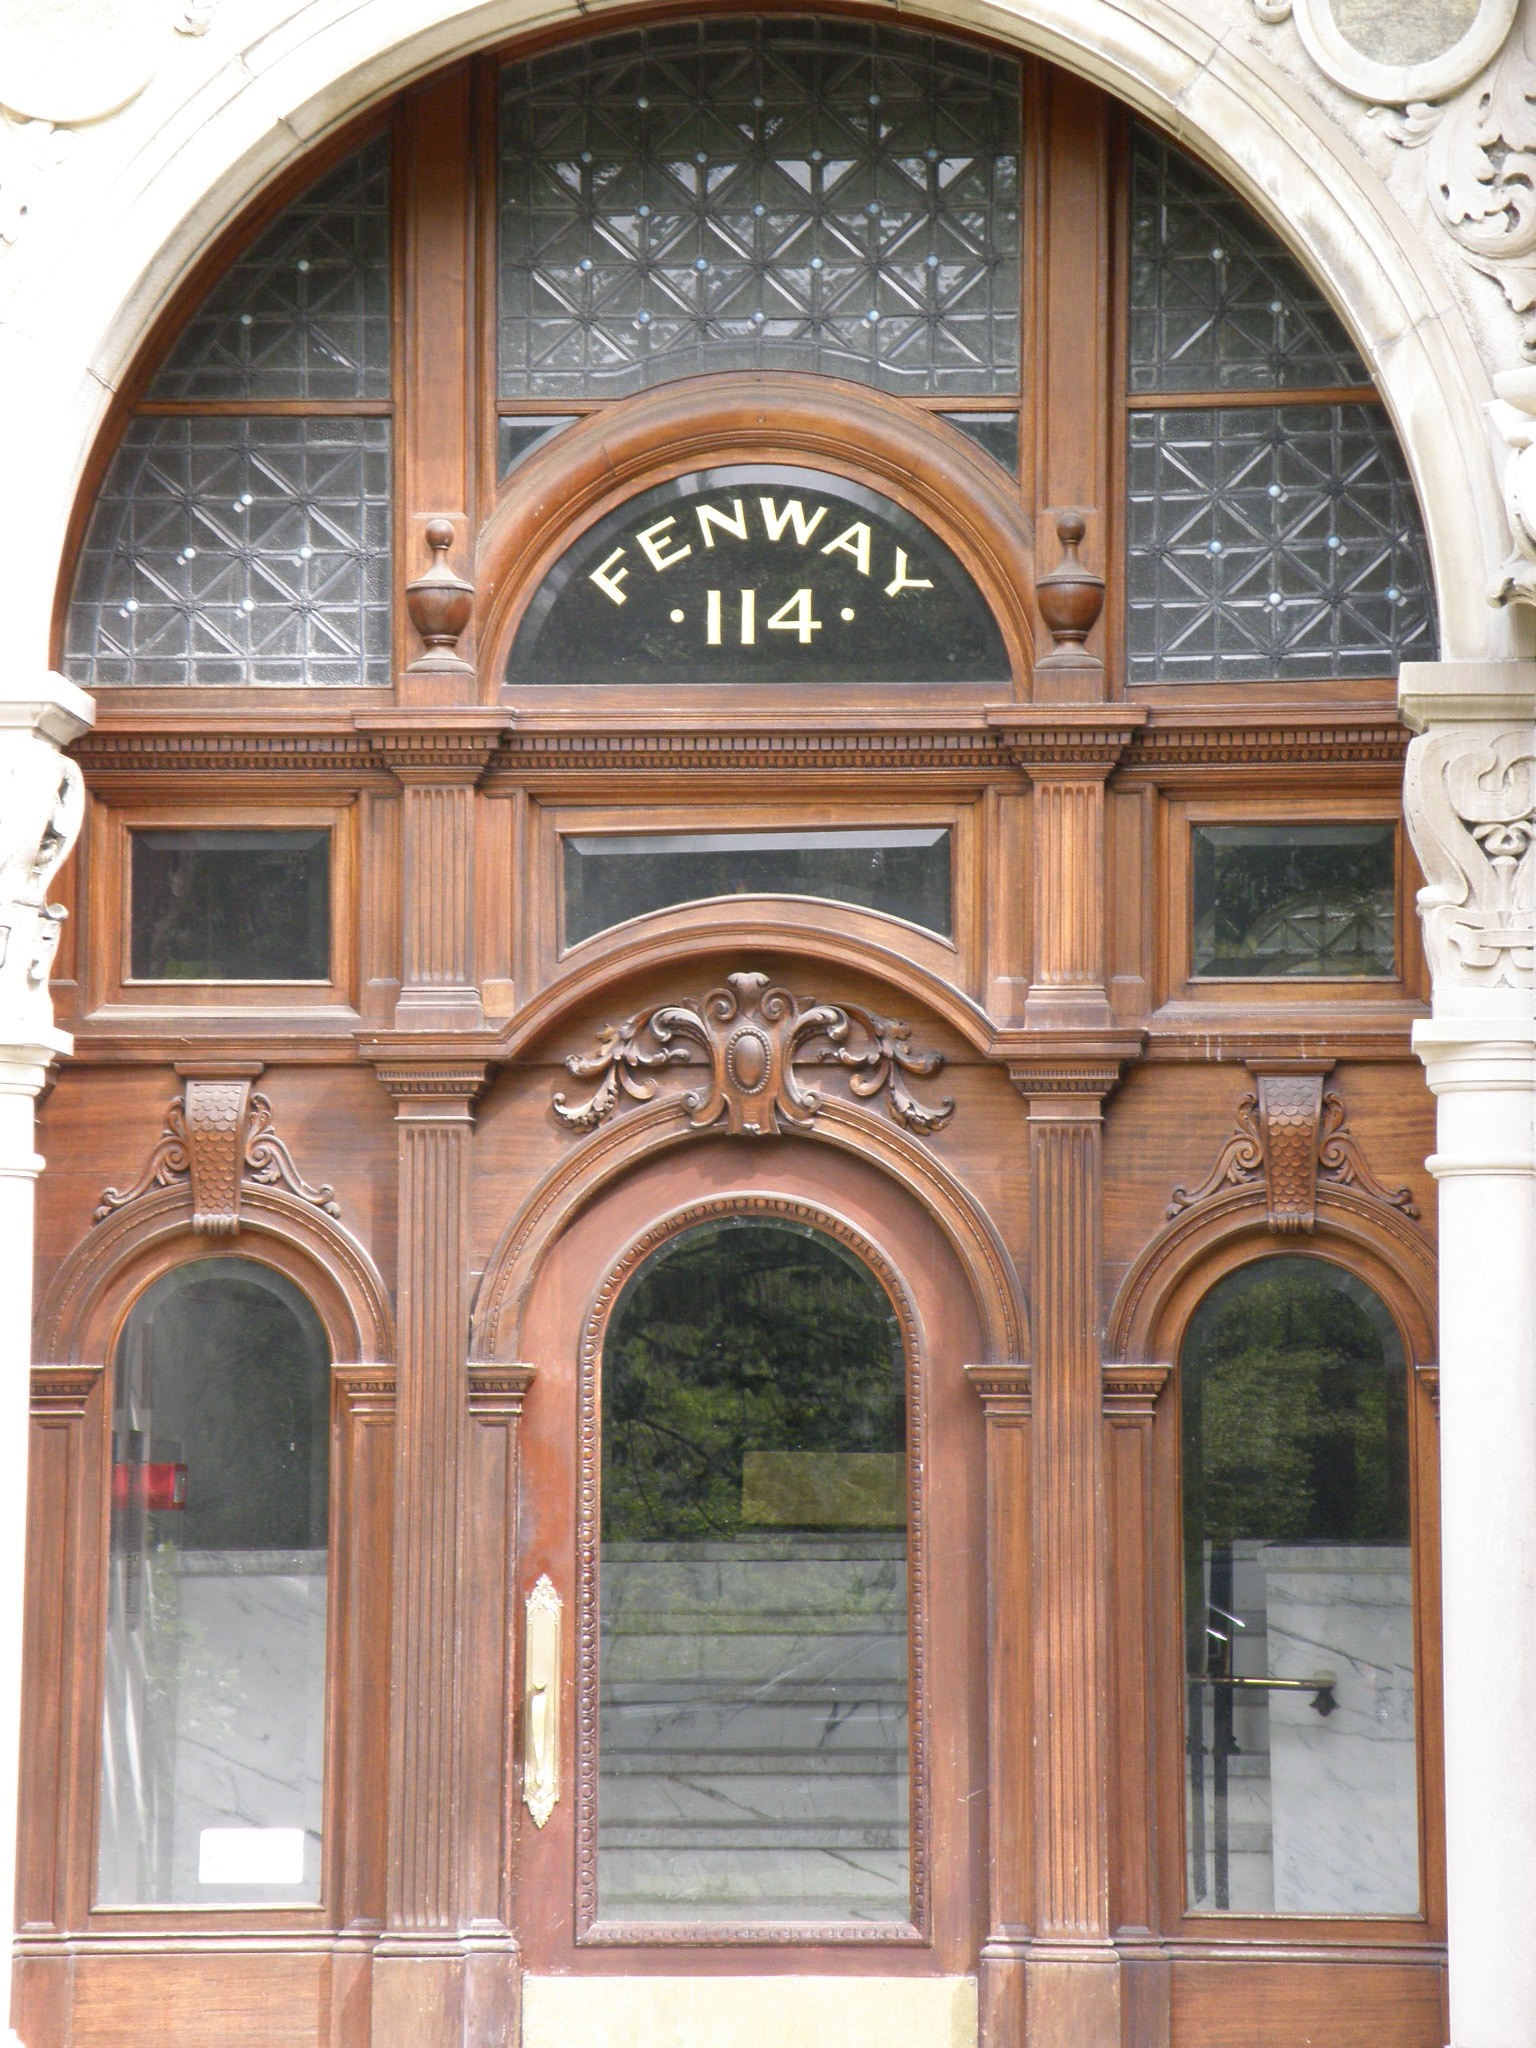 Back Bay Fens Fenway door